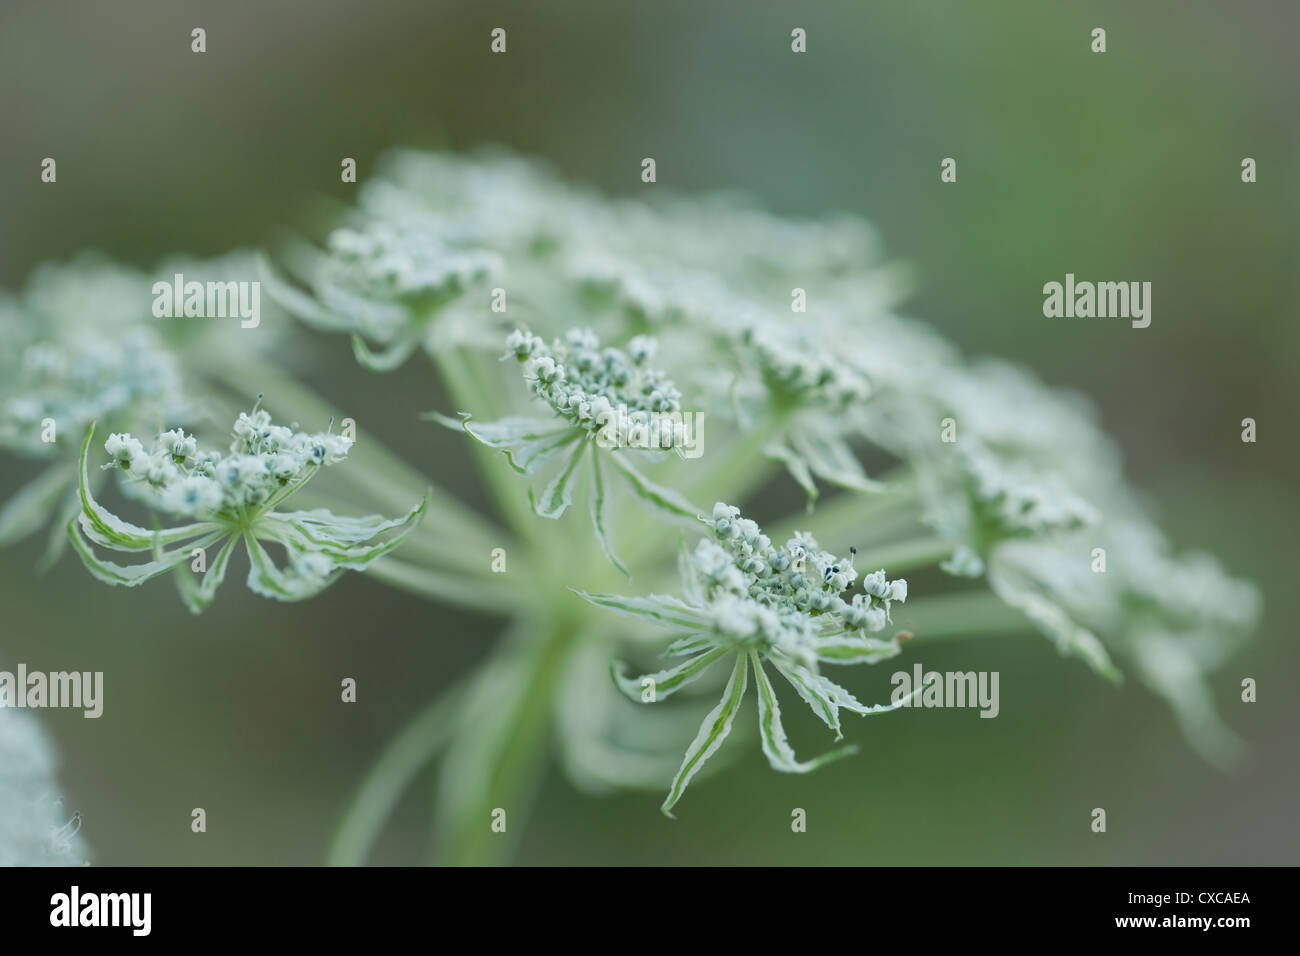 Selinum wallichianum white flowers september united kingdom stock selinum wallichianum white flowers september united kingdom mightylinksfo